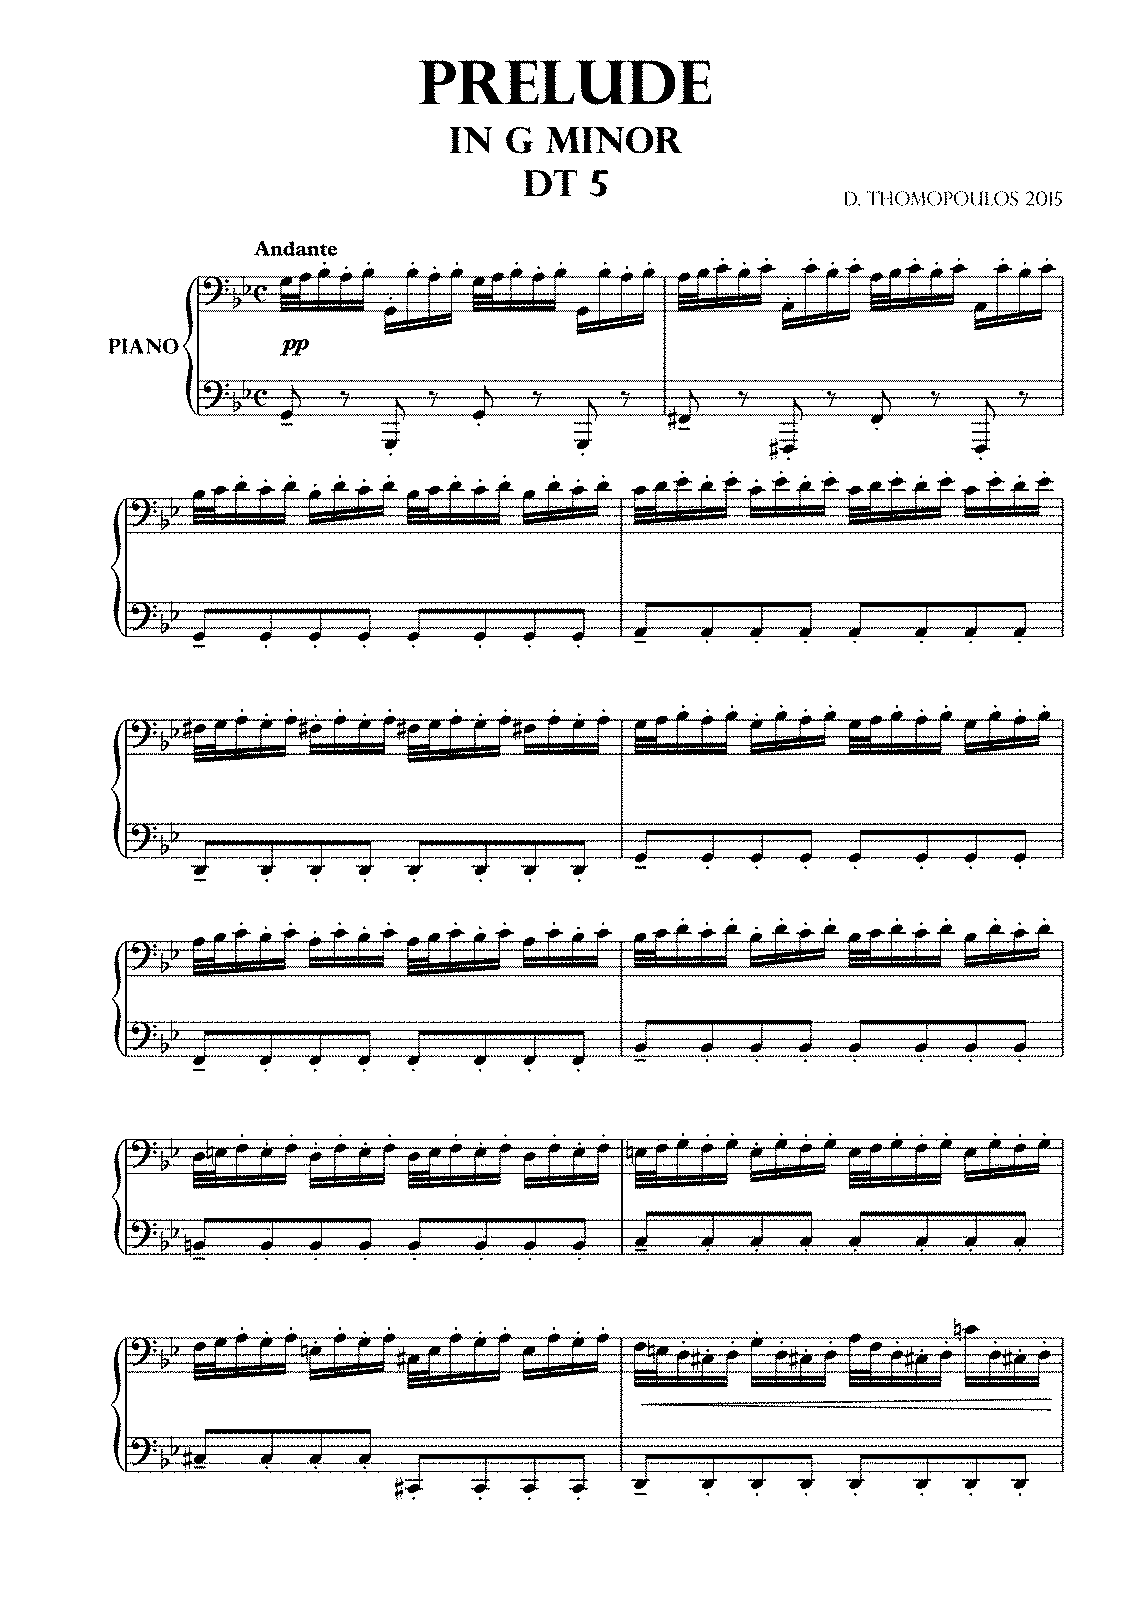 PMLP616929-d. thomopoulos Prelude in g minor.pdf